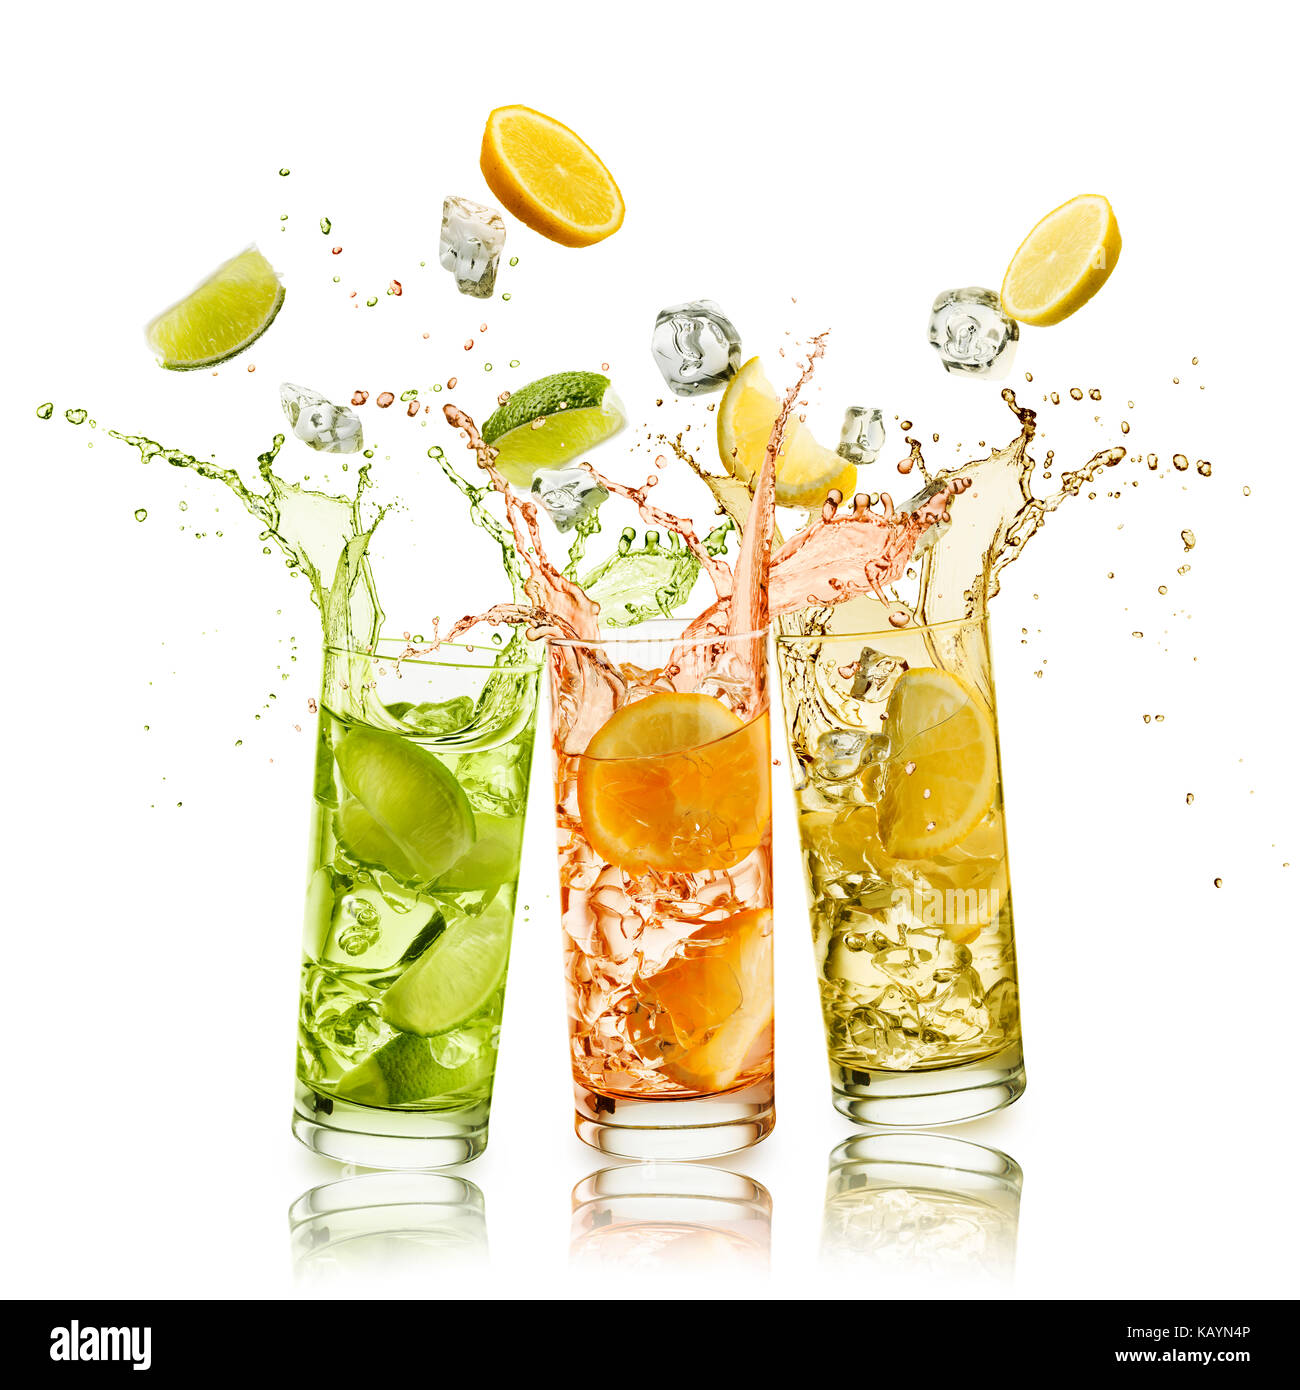 citrus fruits soft drink with fruit slices and ice cubes falling and splashing, on white background - Stock Image